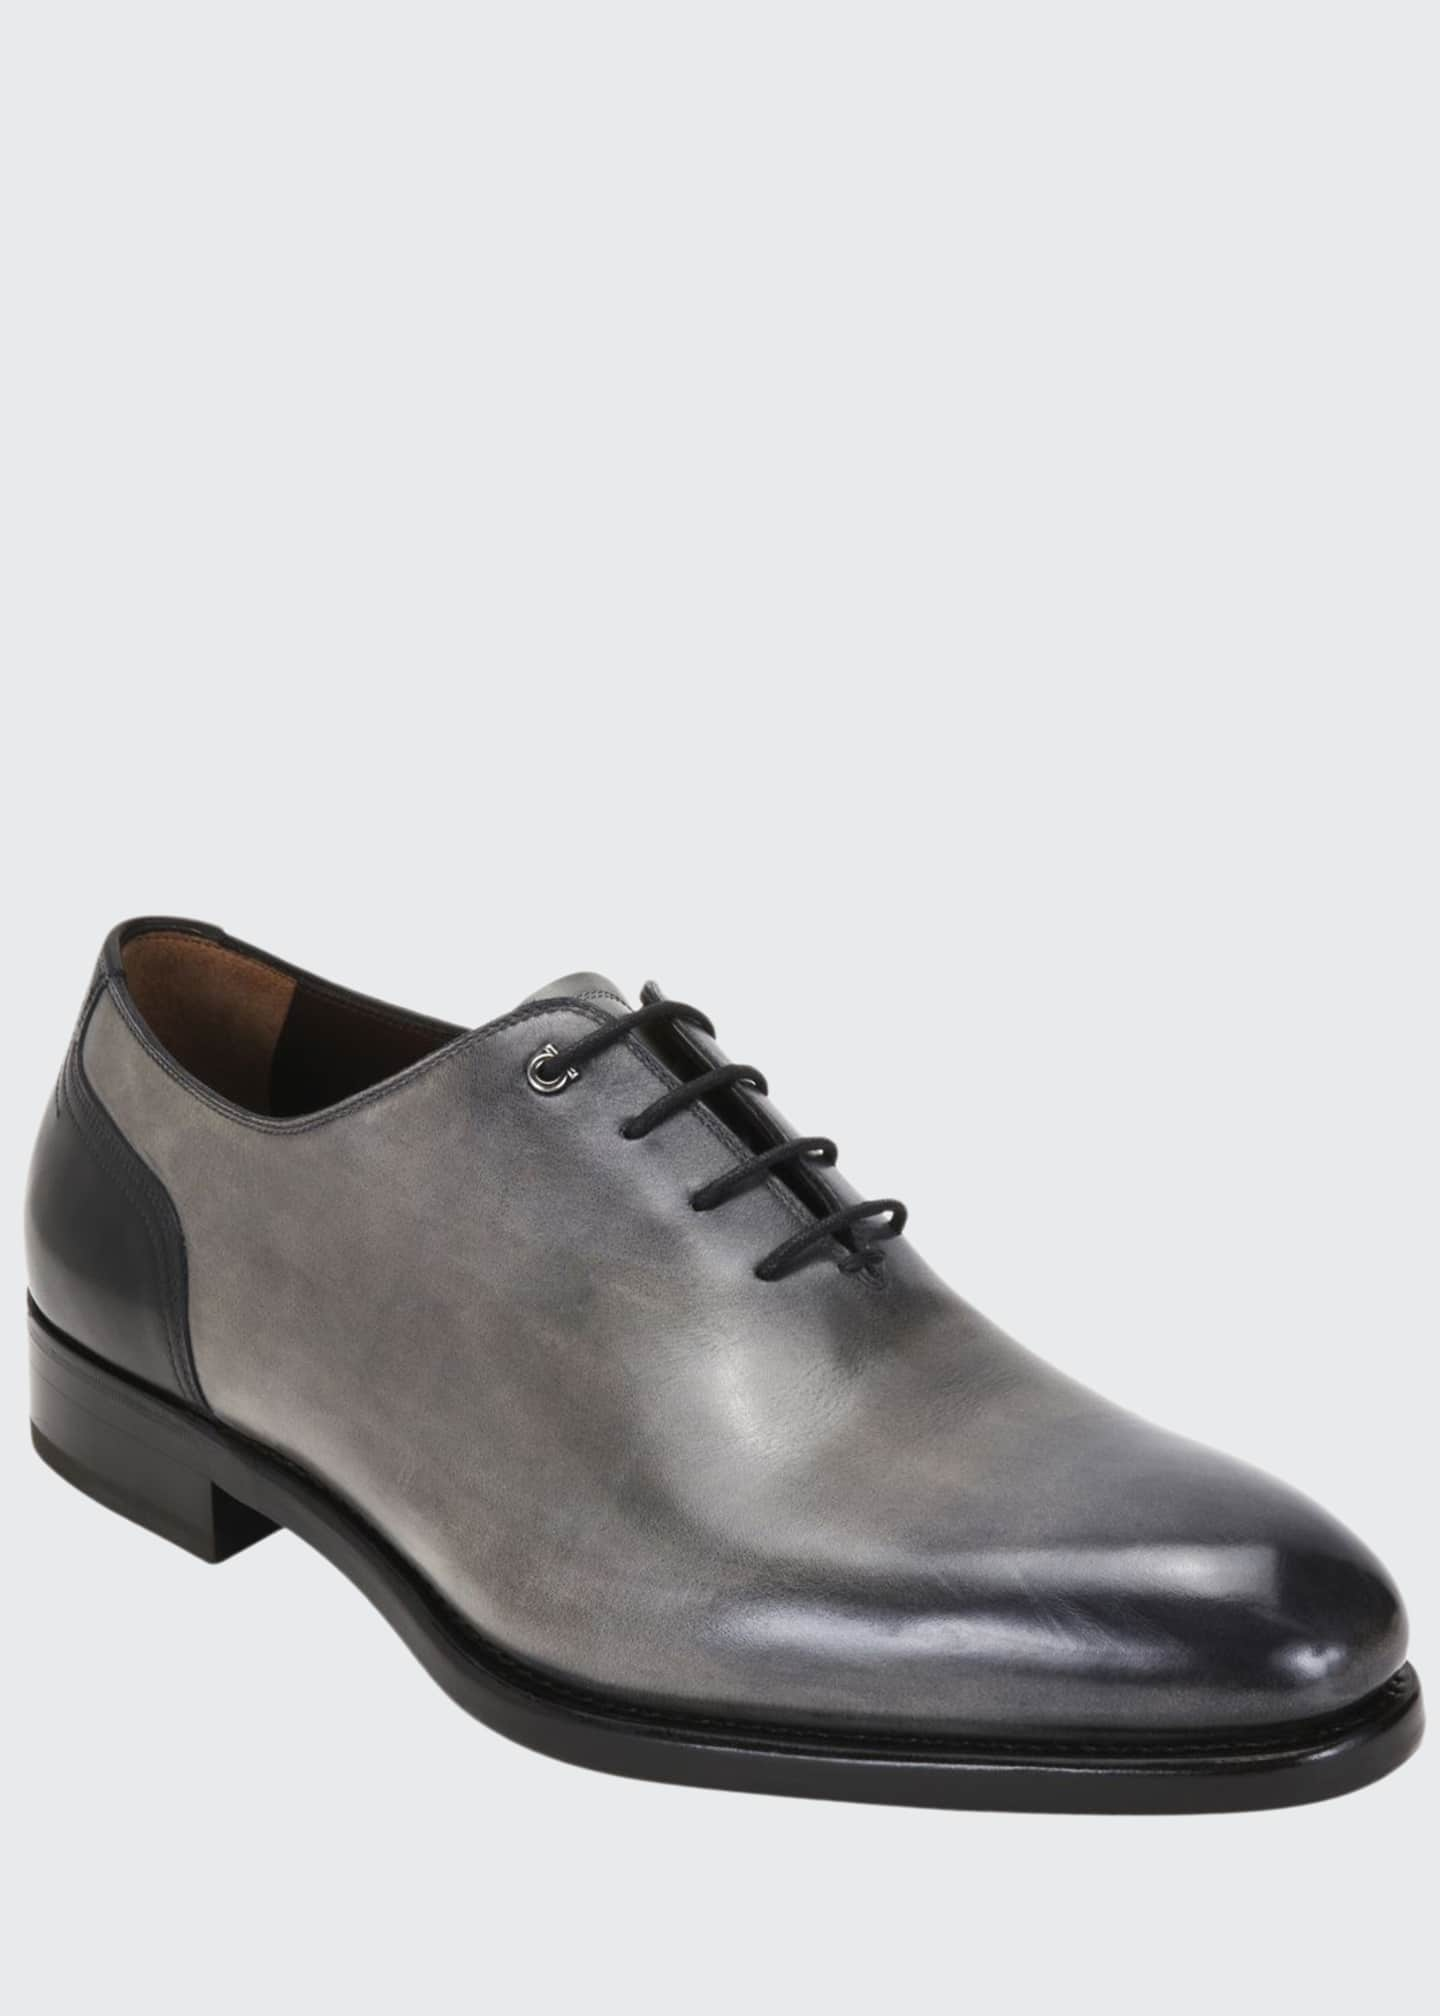 Image 1 of 4: Men's Barclay Burnished Leather Oxford Shoes